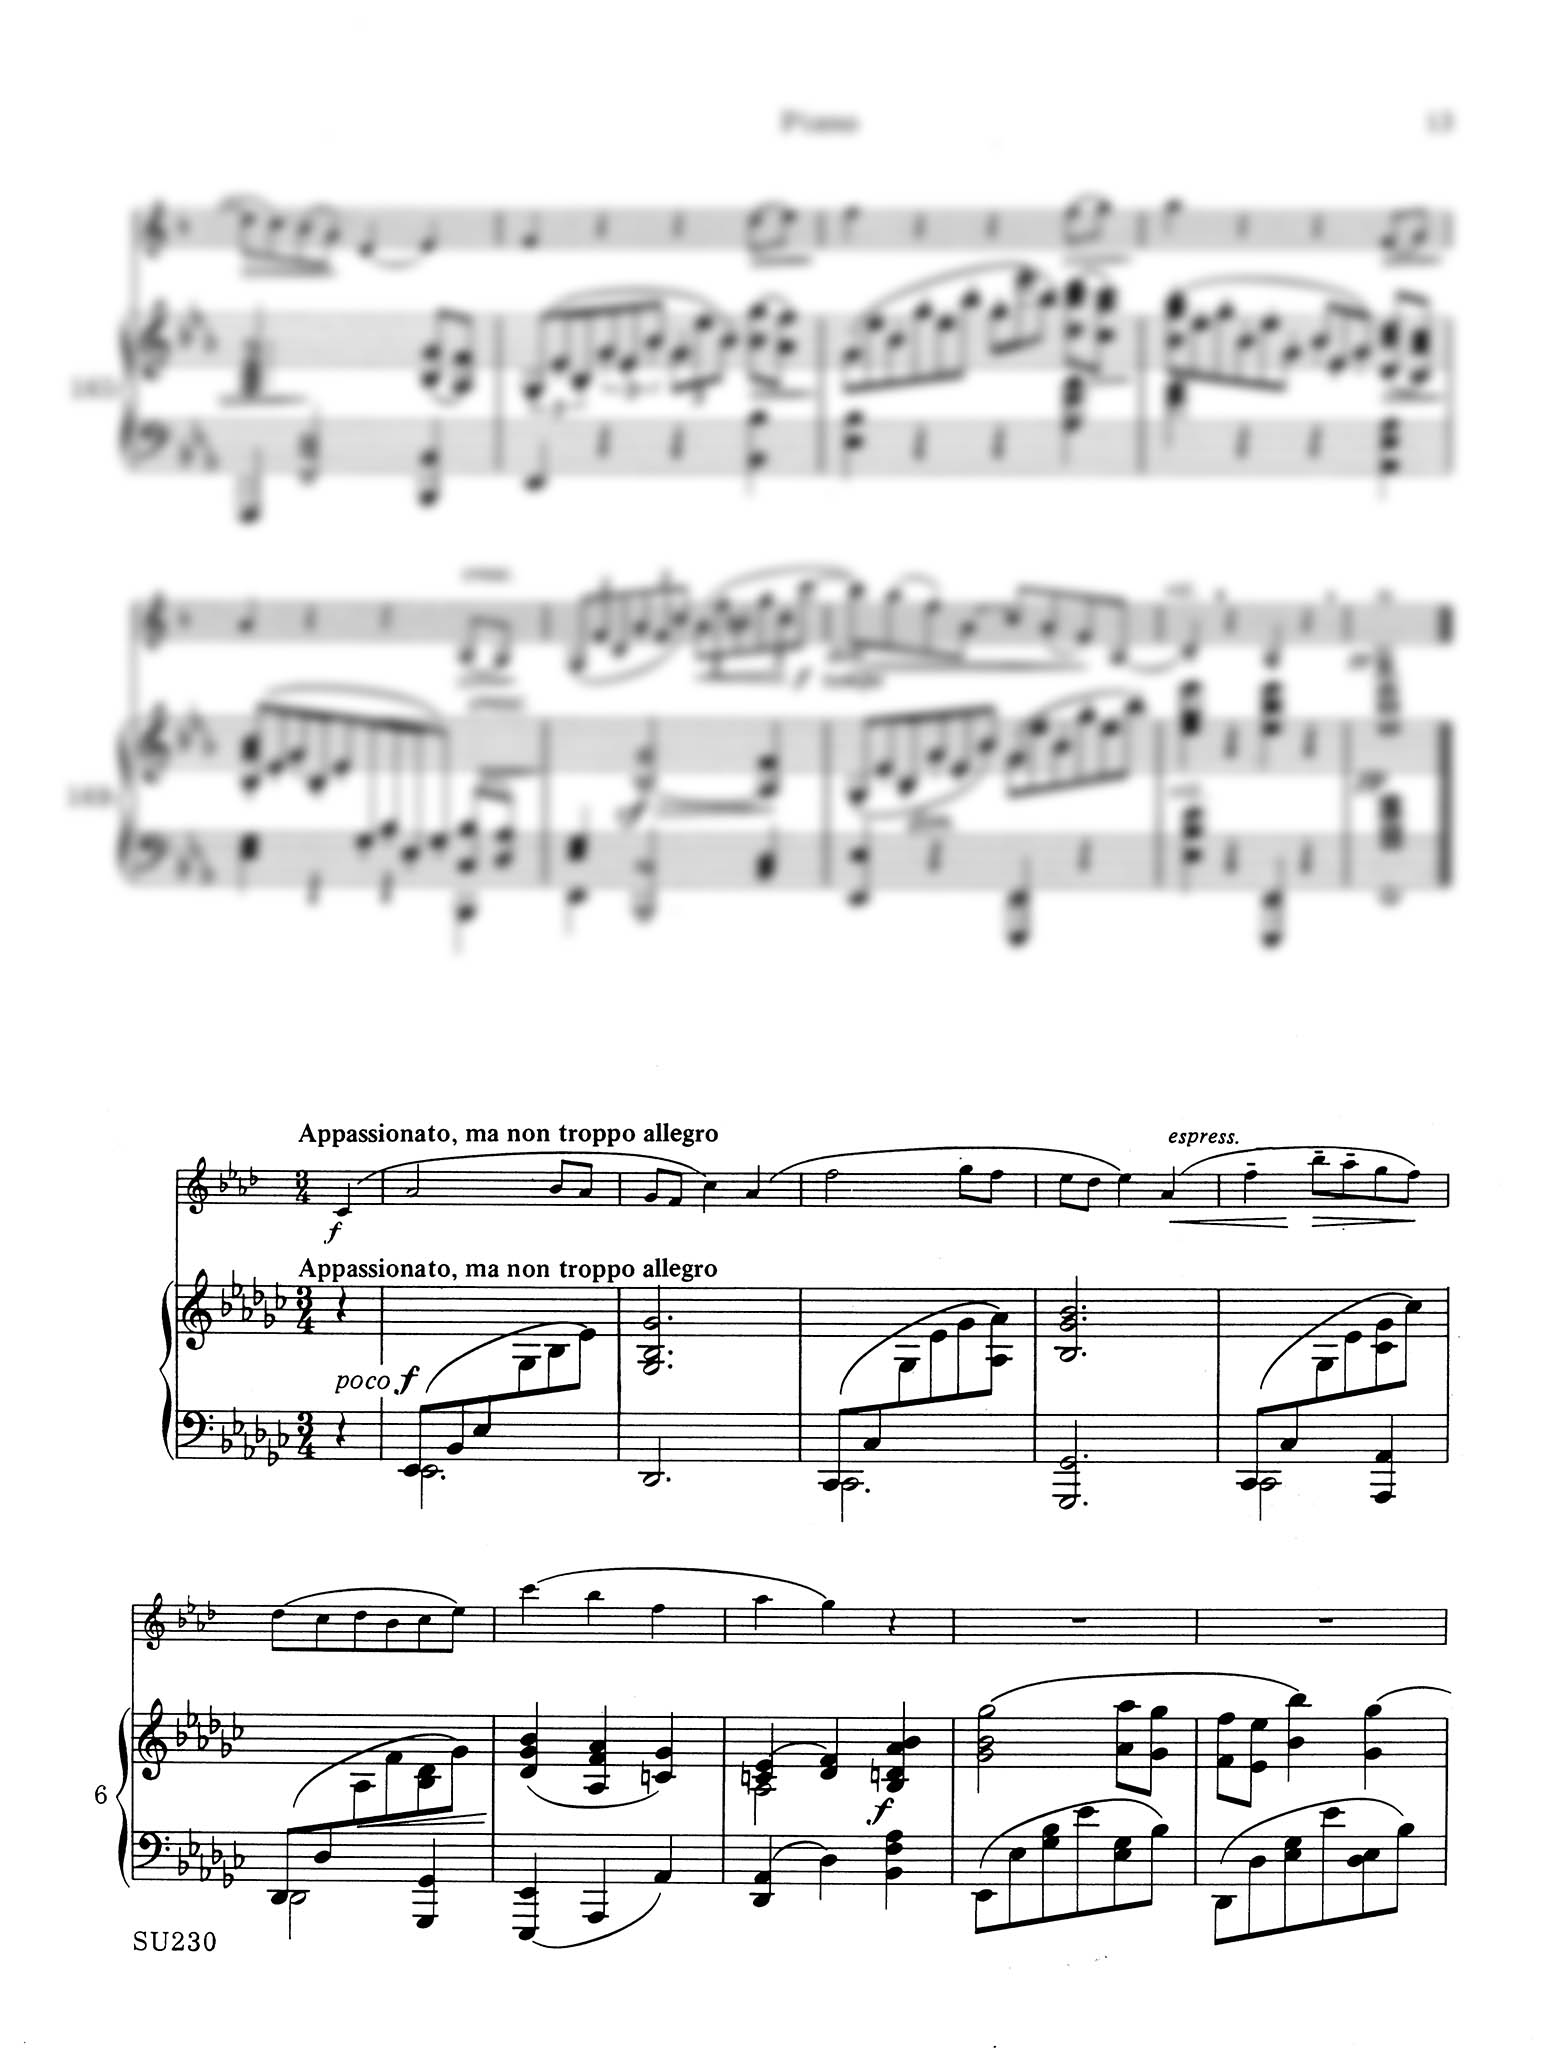 Sonata in E-flat Major, Op. 120 No. 2 - Movement 2